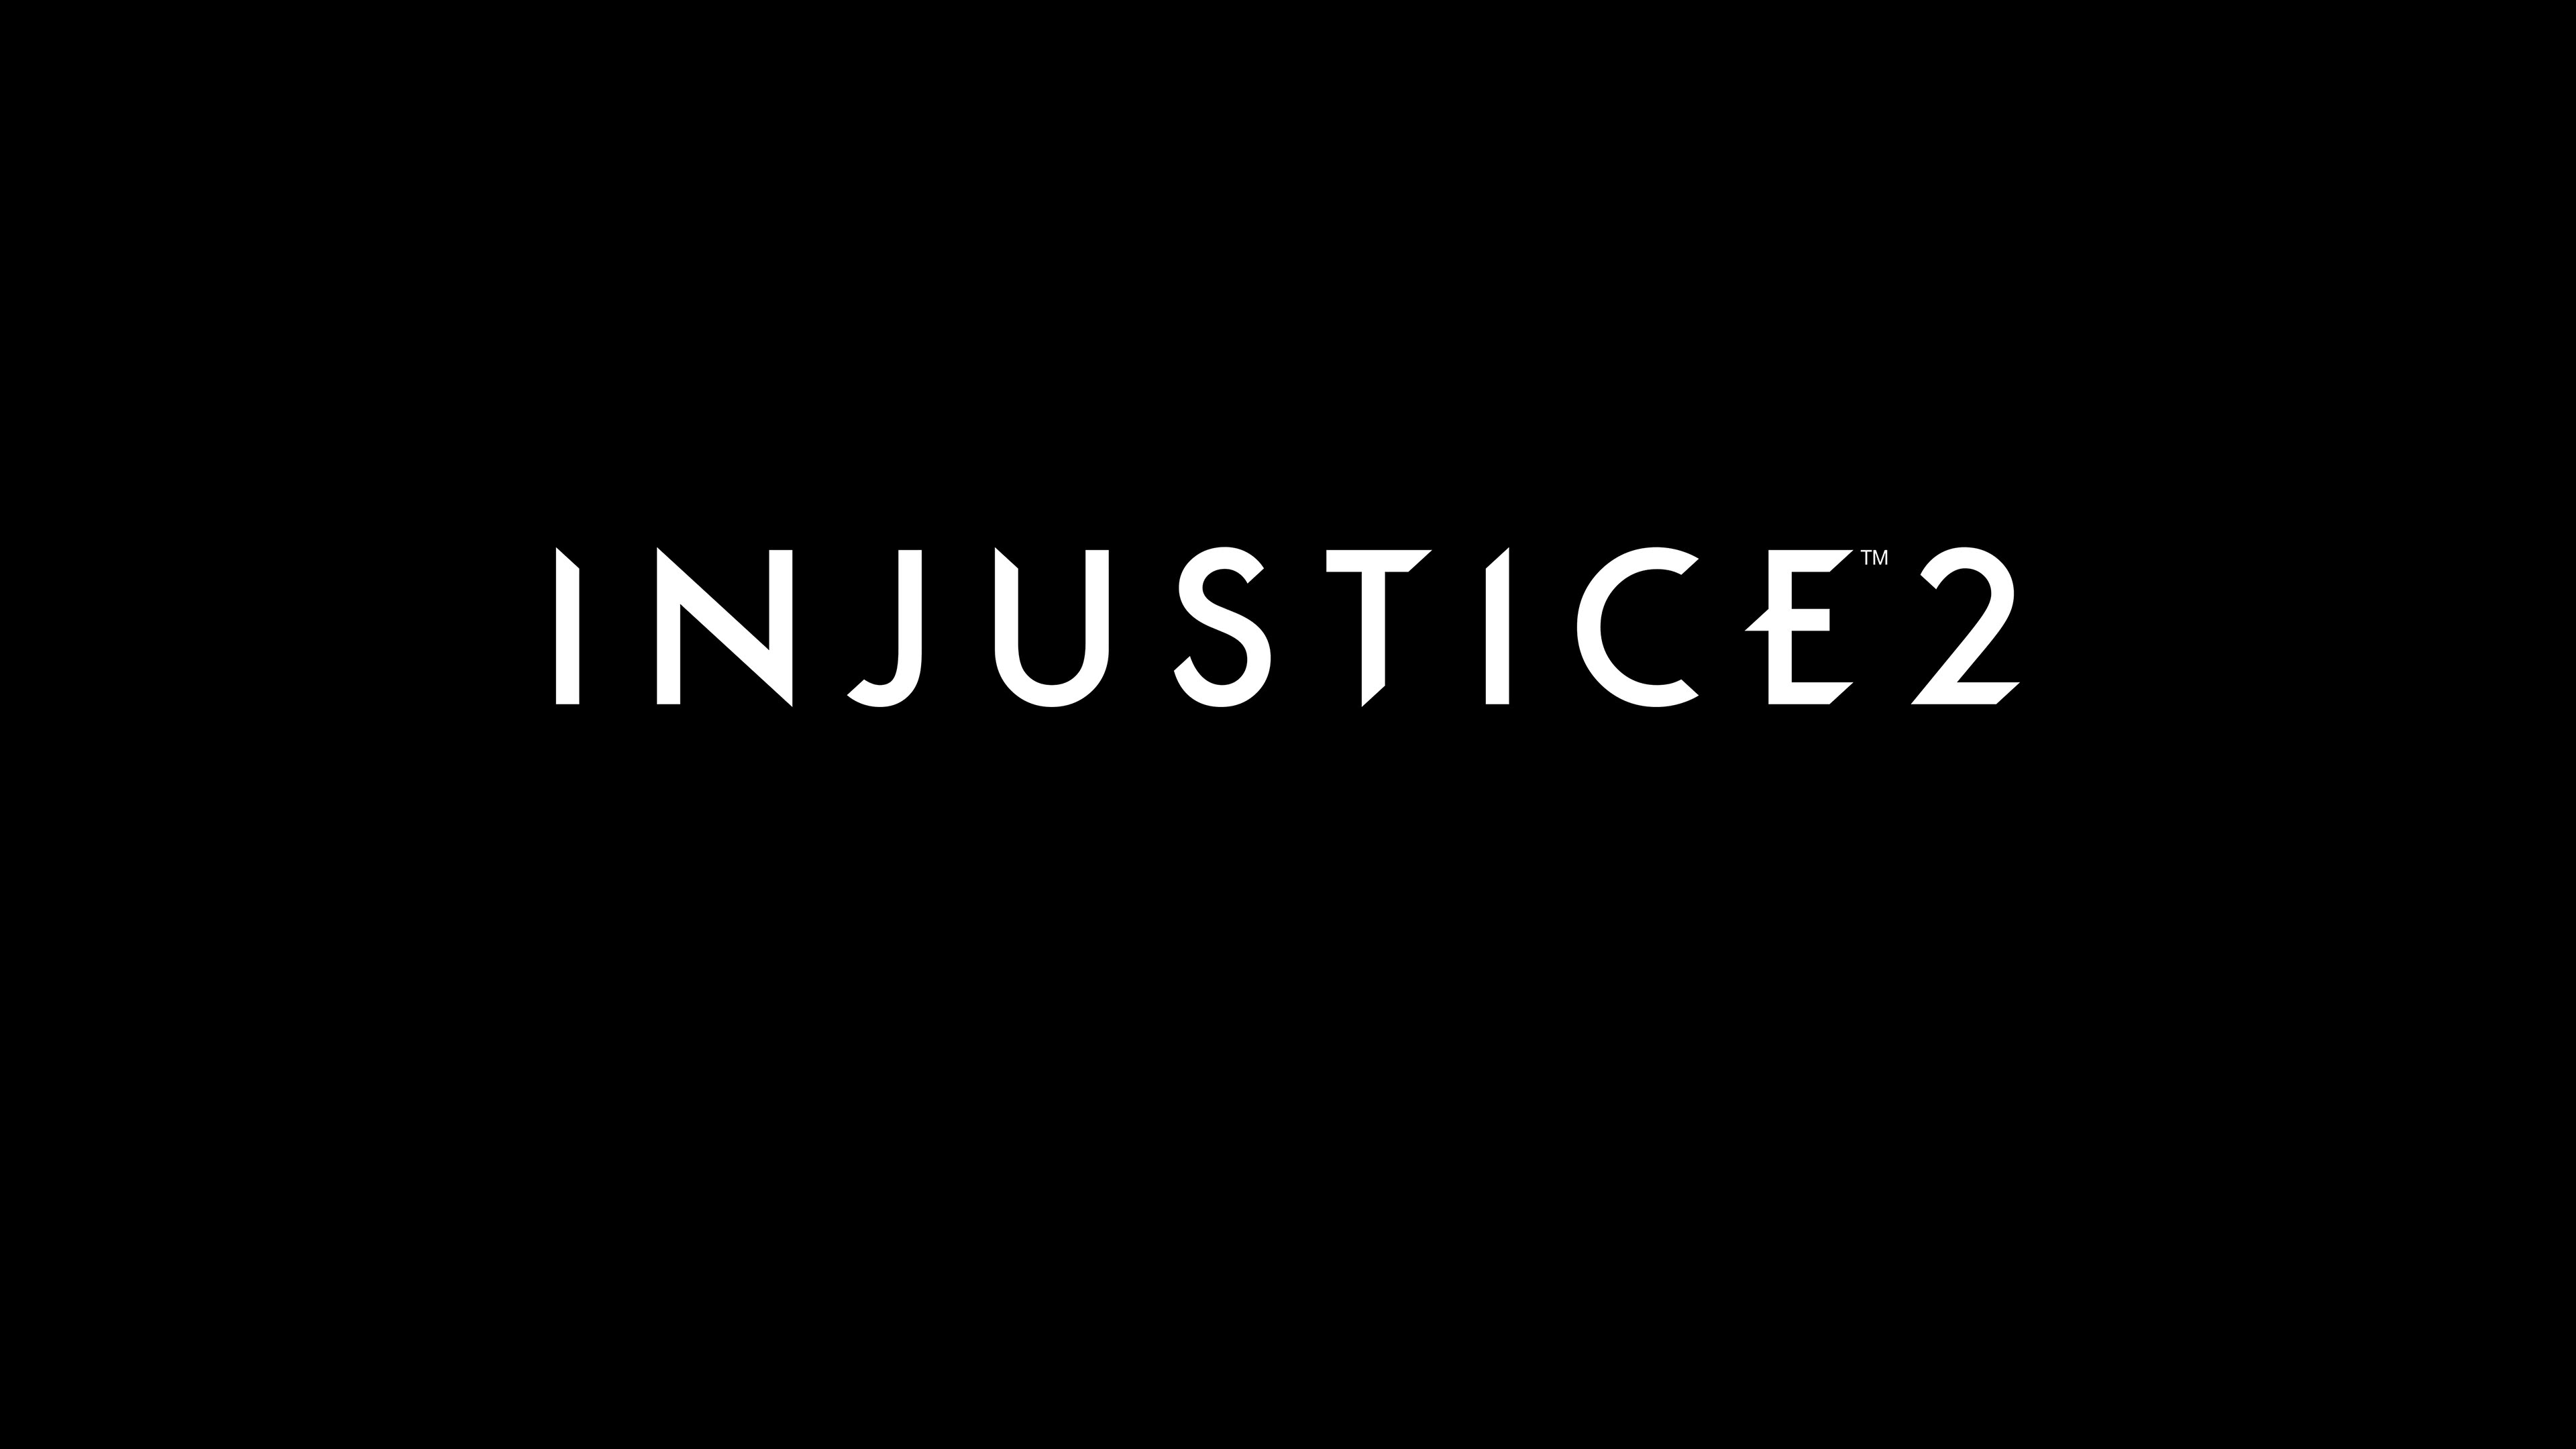 injustice 2 logo uhd 4k wallpaper